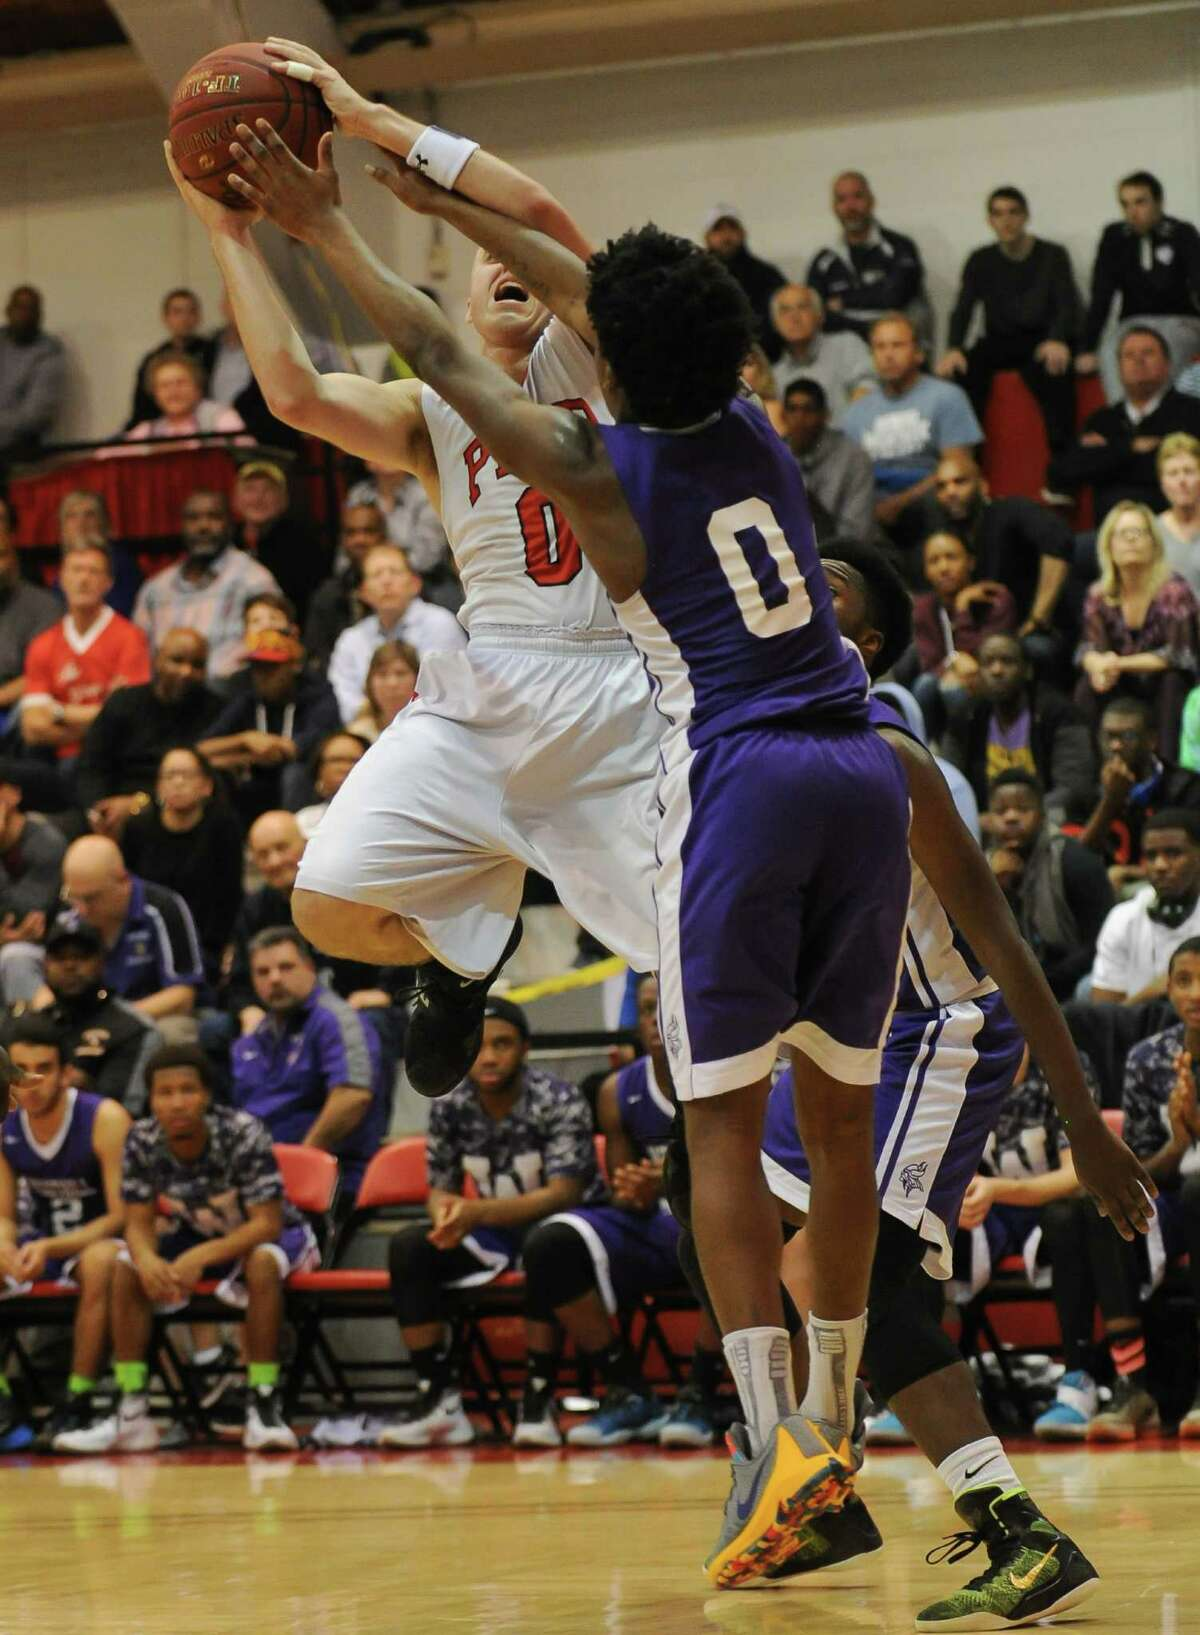 Basketball action during the second round of the Connecticut Class LL Basketball Championships between the Fairfield Prep Jesuits and the Westhill Vikings at Alumni Hall, Fairfield University on March 10, 2016 in Fairfield, Connecticut.